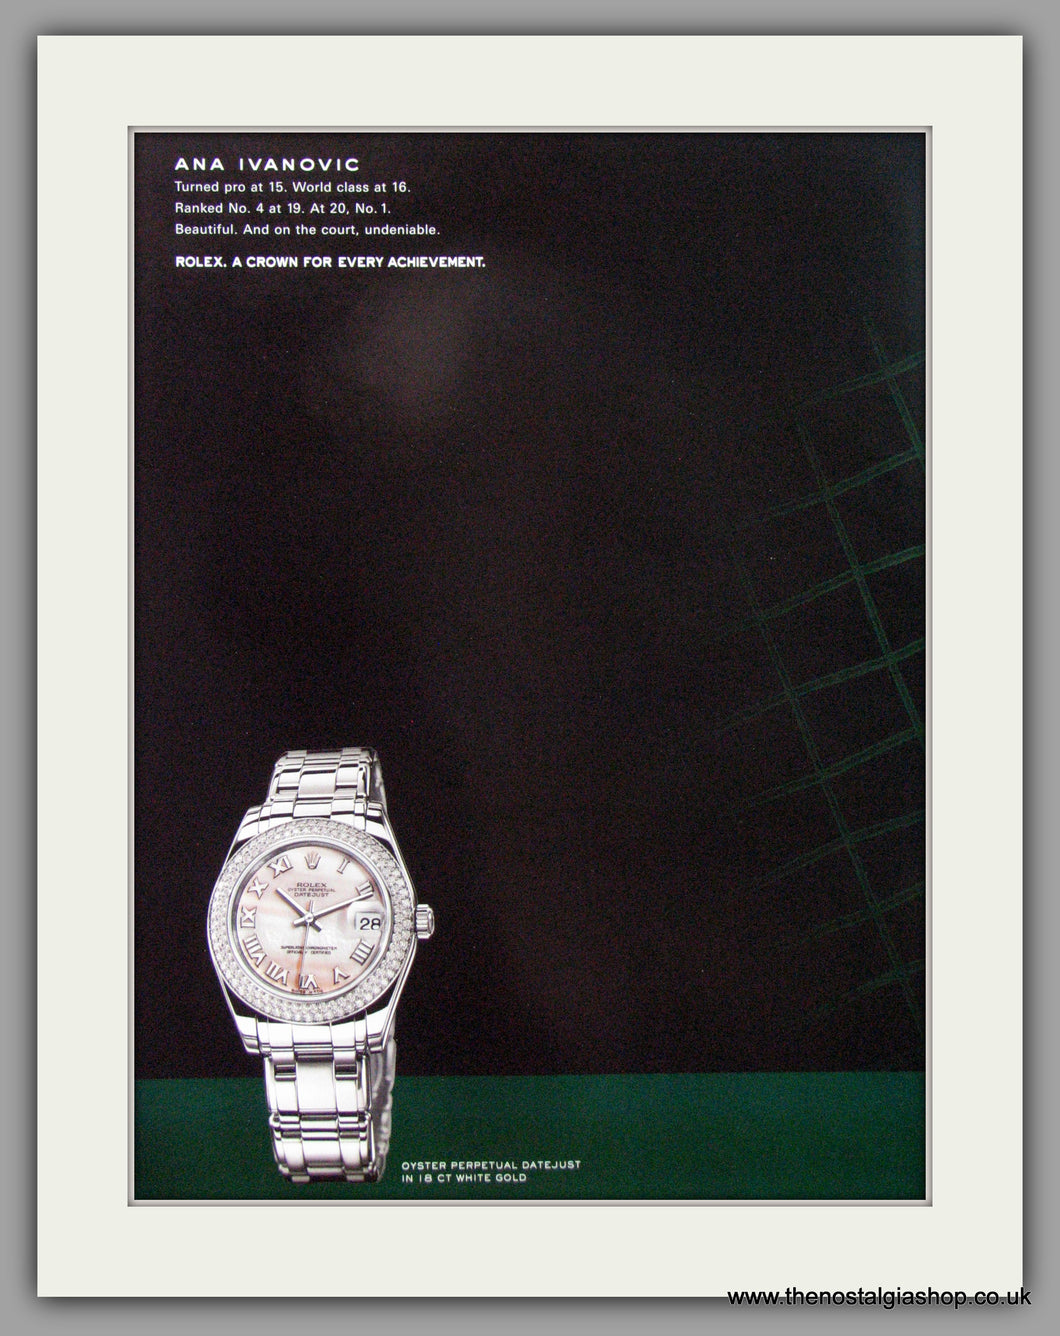 Rolex Oyster Perpetual Datejust Watch. Original Double Advert 2000 (ref AD50164)